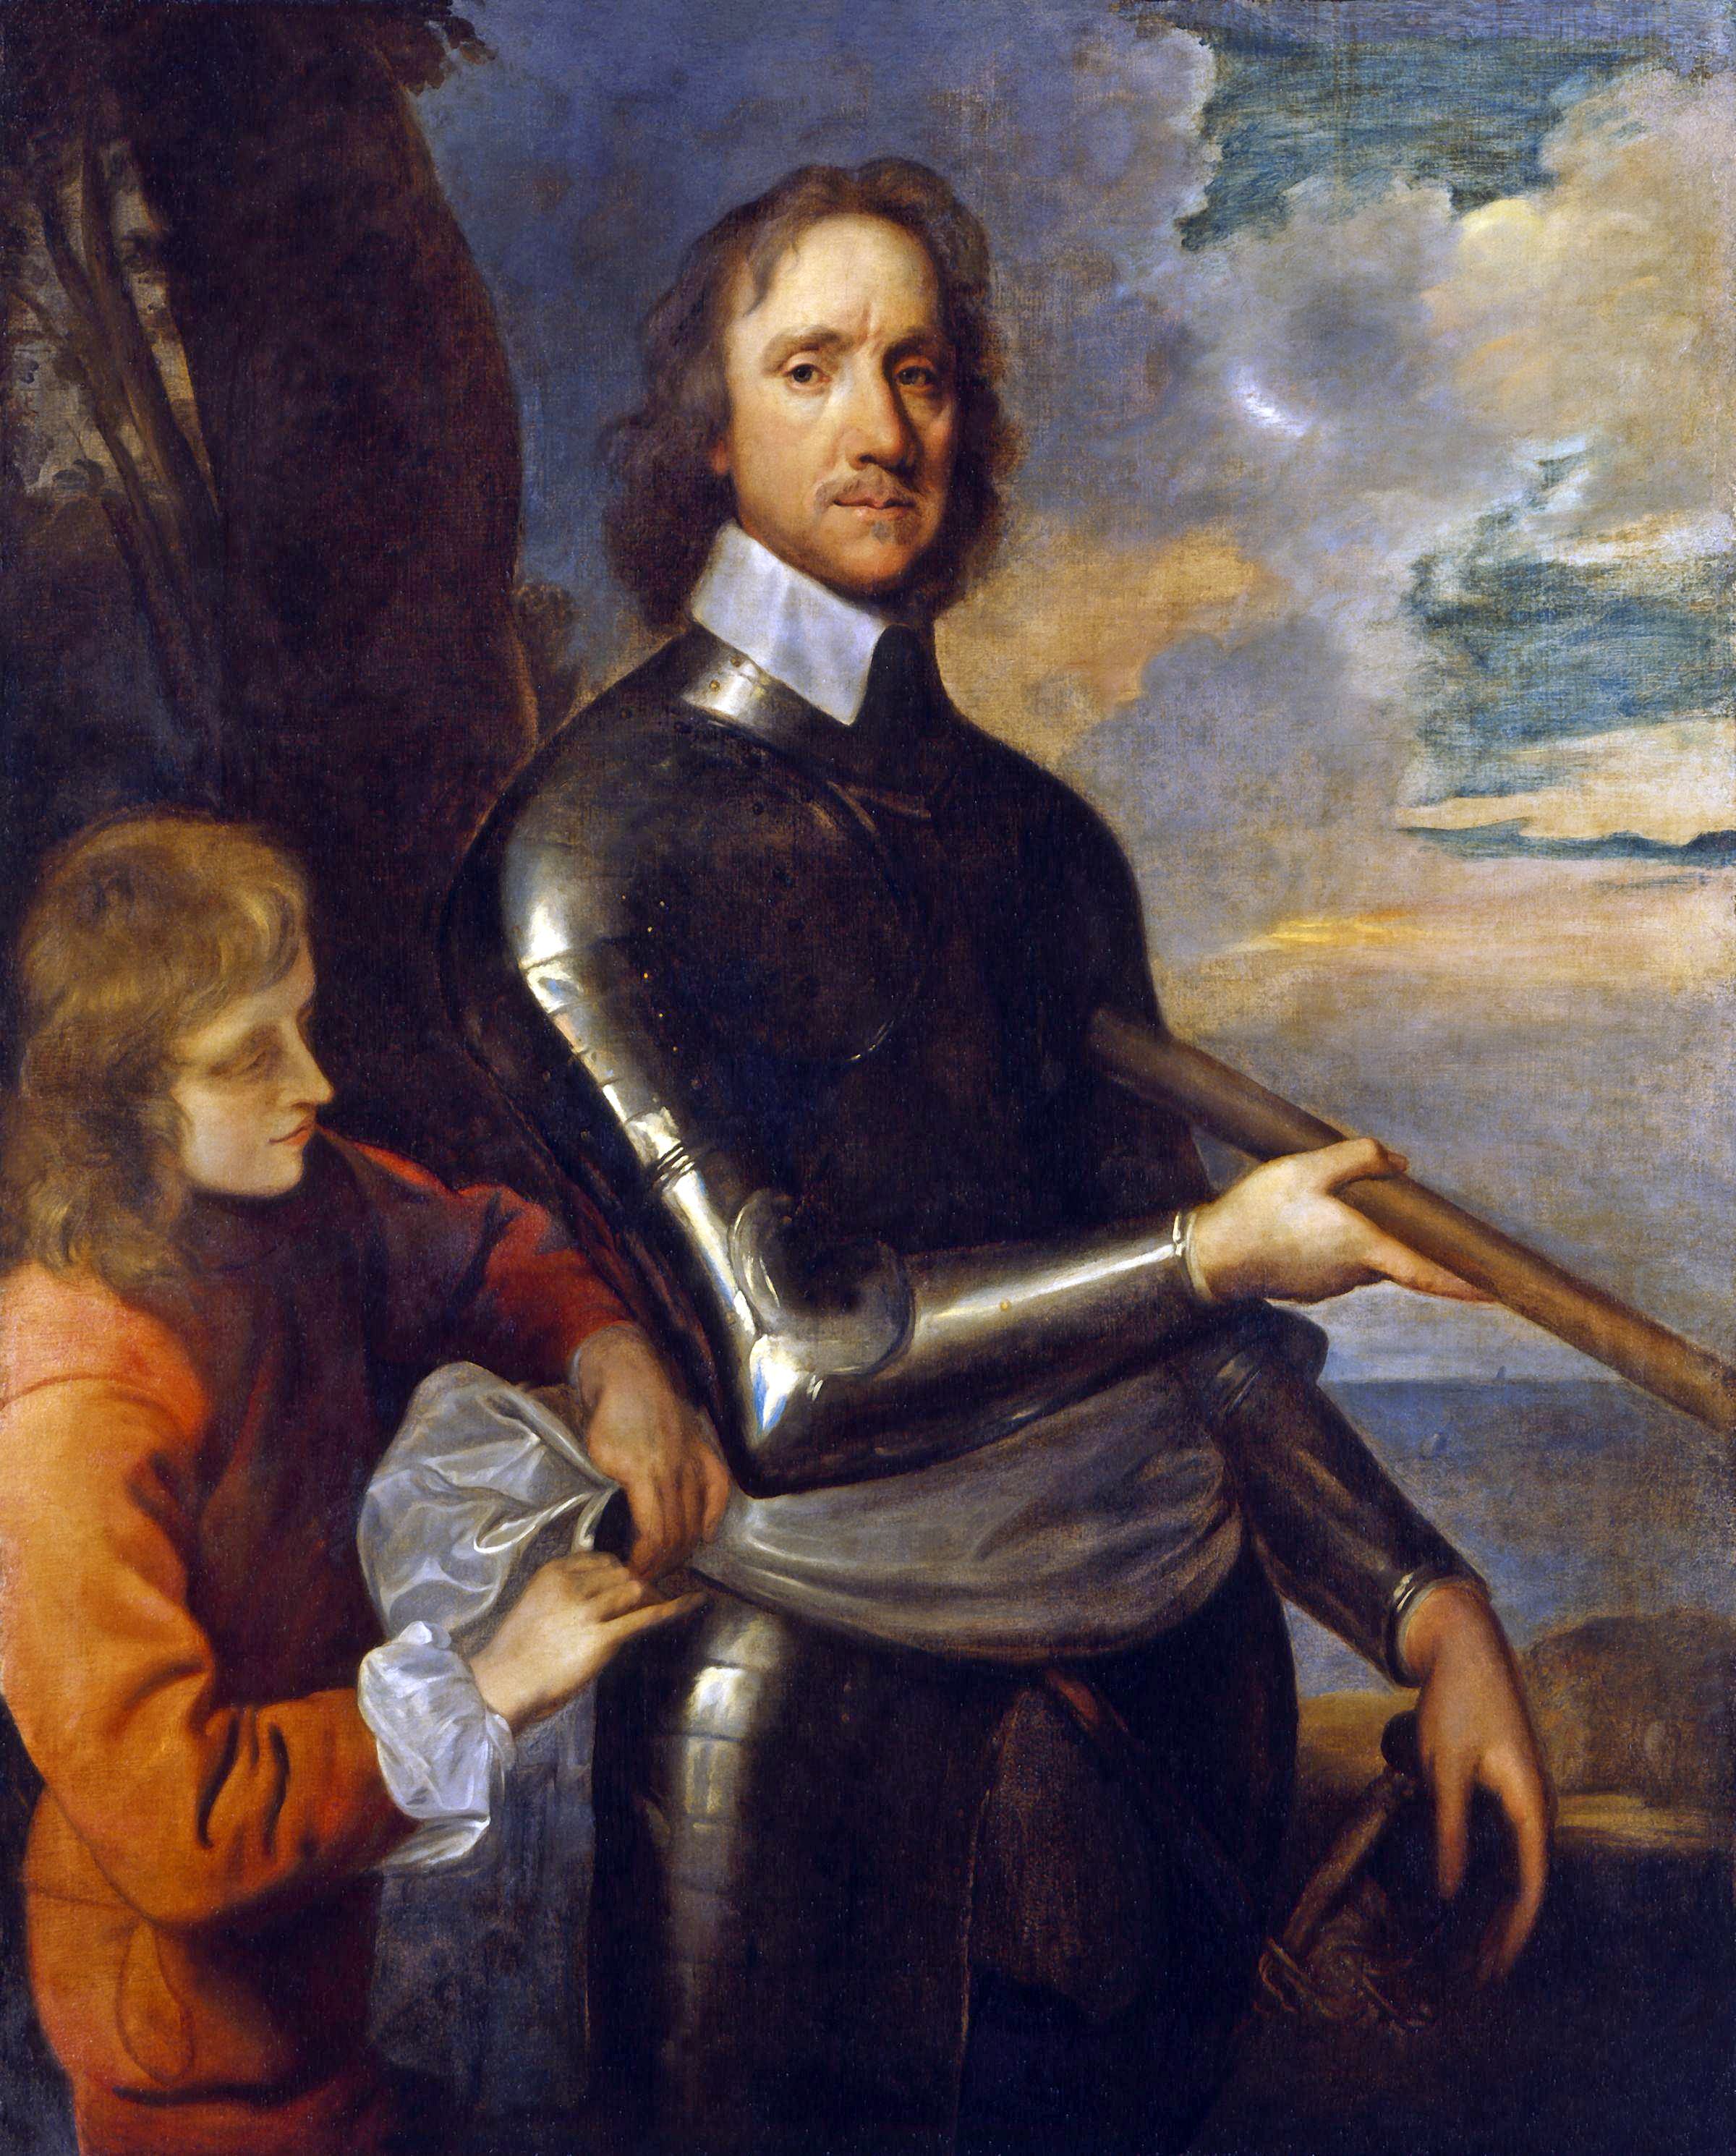 oliver cromwell essay oliver cromwell hero or villain essay resume  tom clark andrew marvell the wars and fortunes son cromwell s andrew marvell the wars and